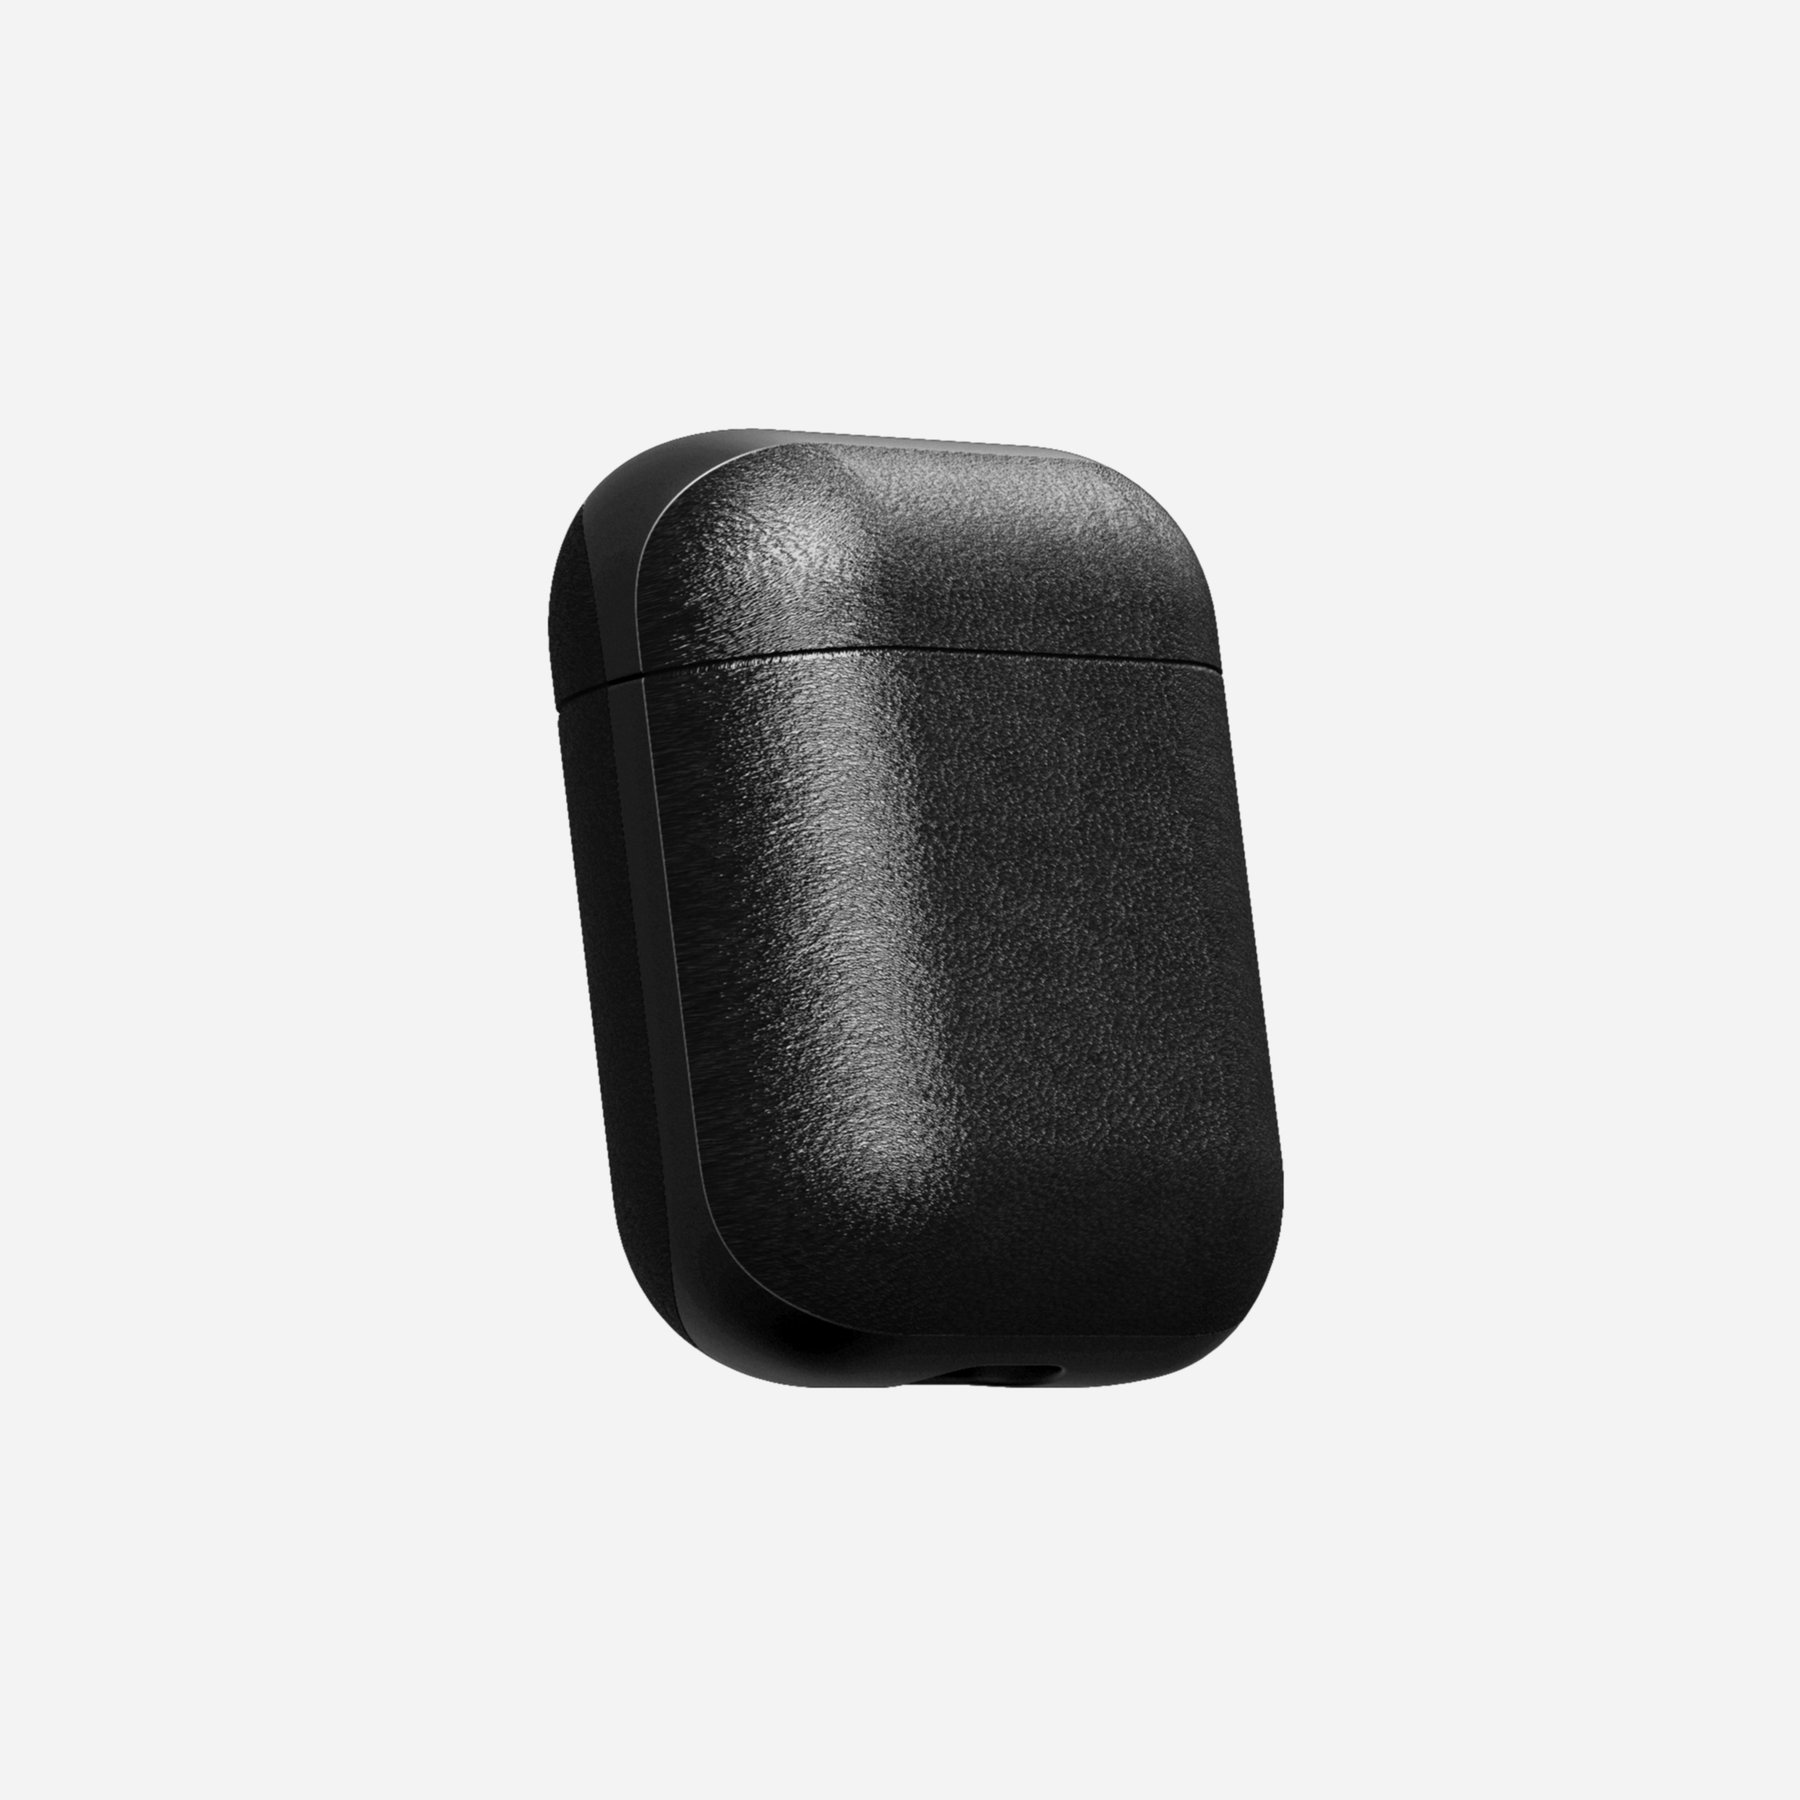 Nomad Airpod Case, Leather Black